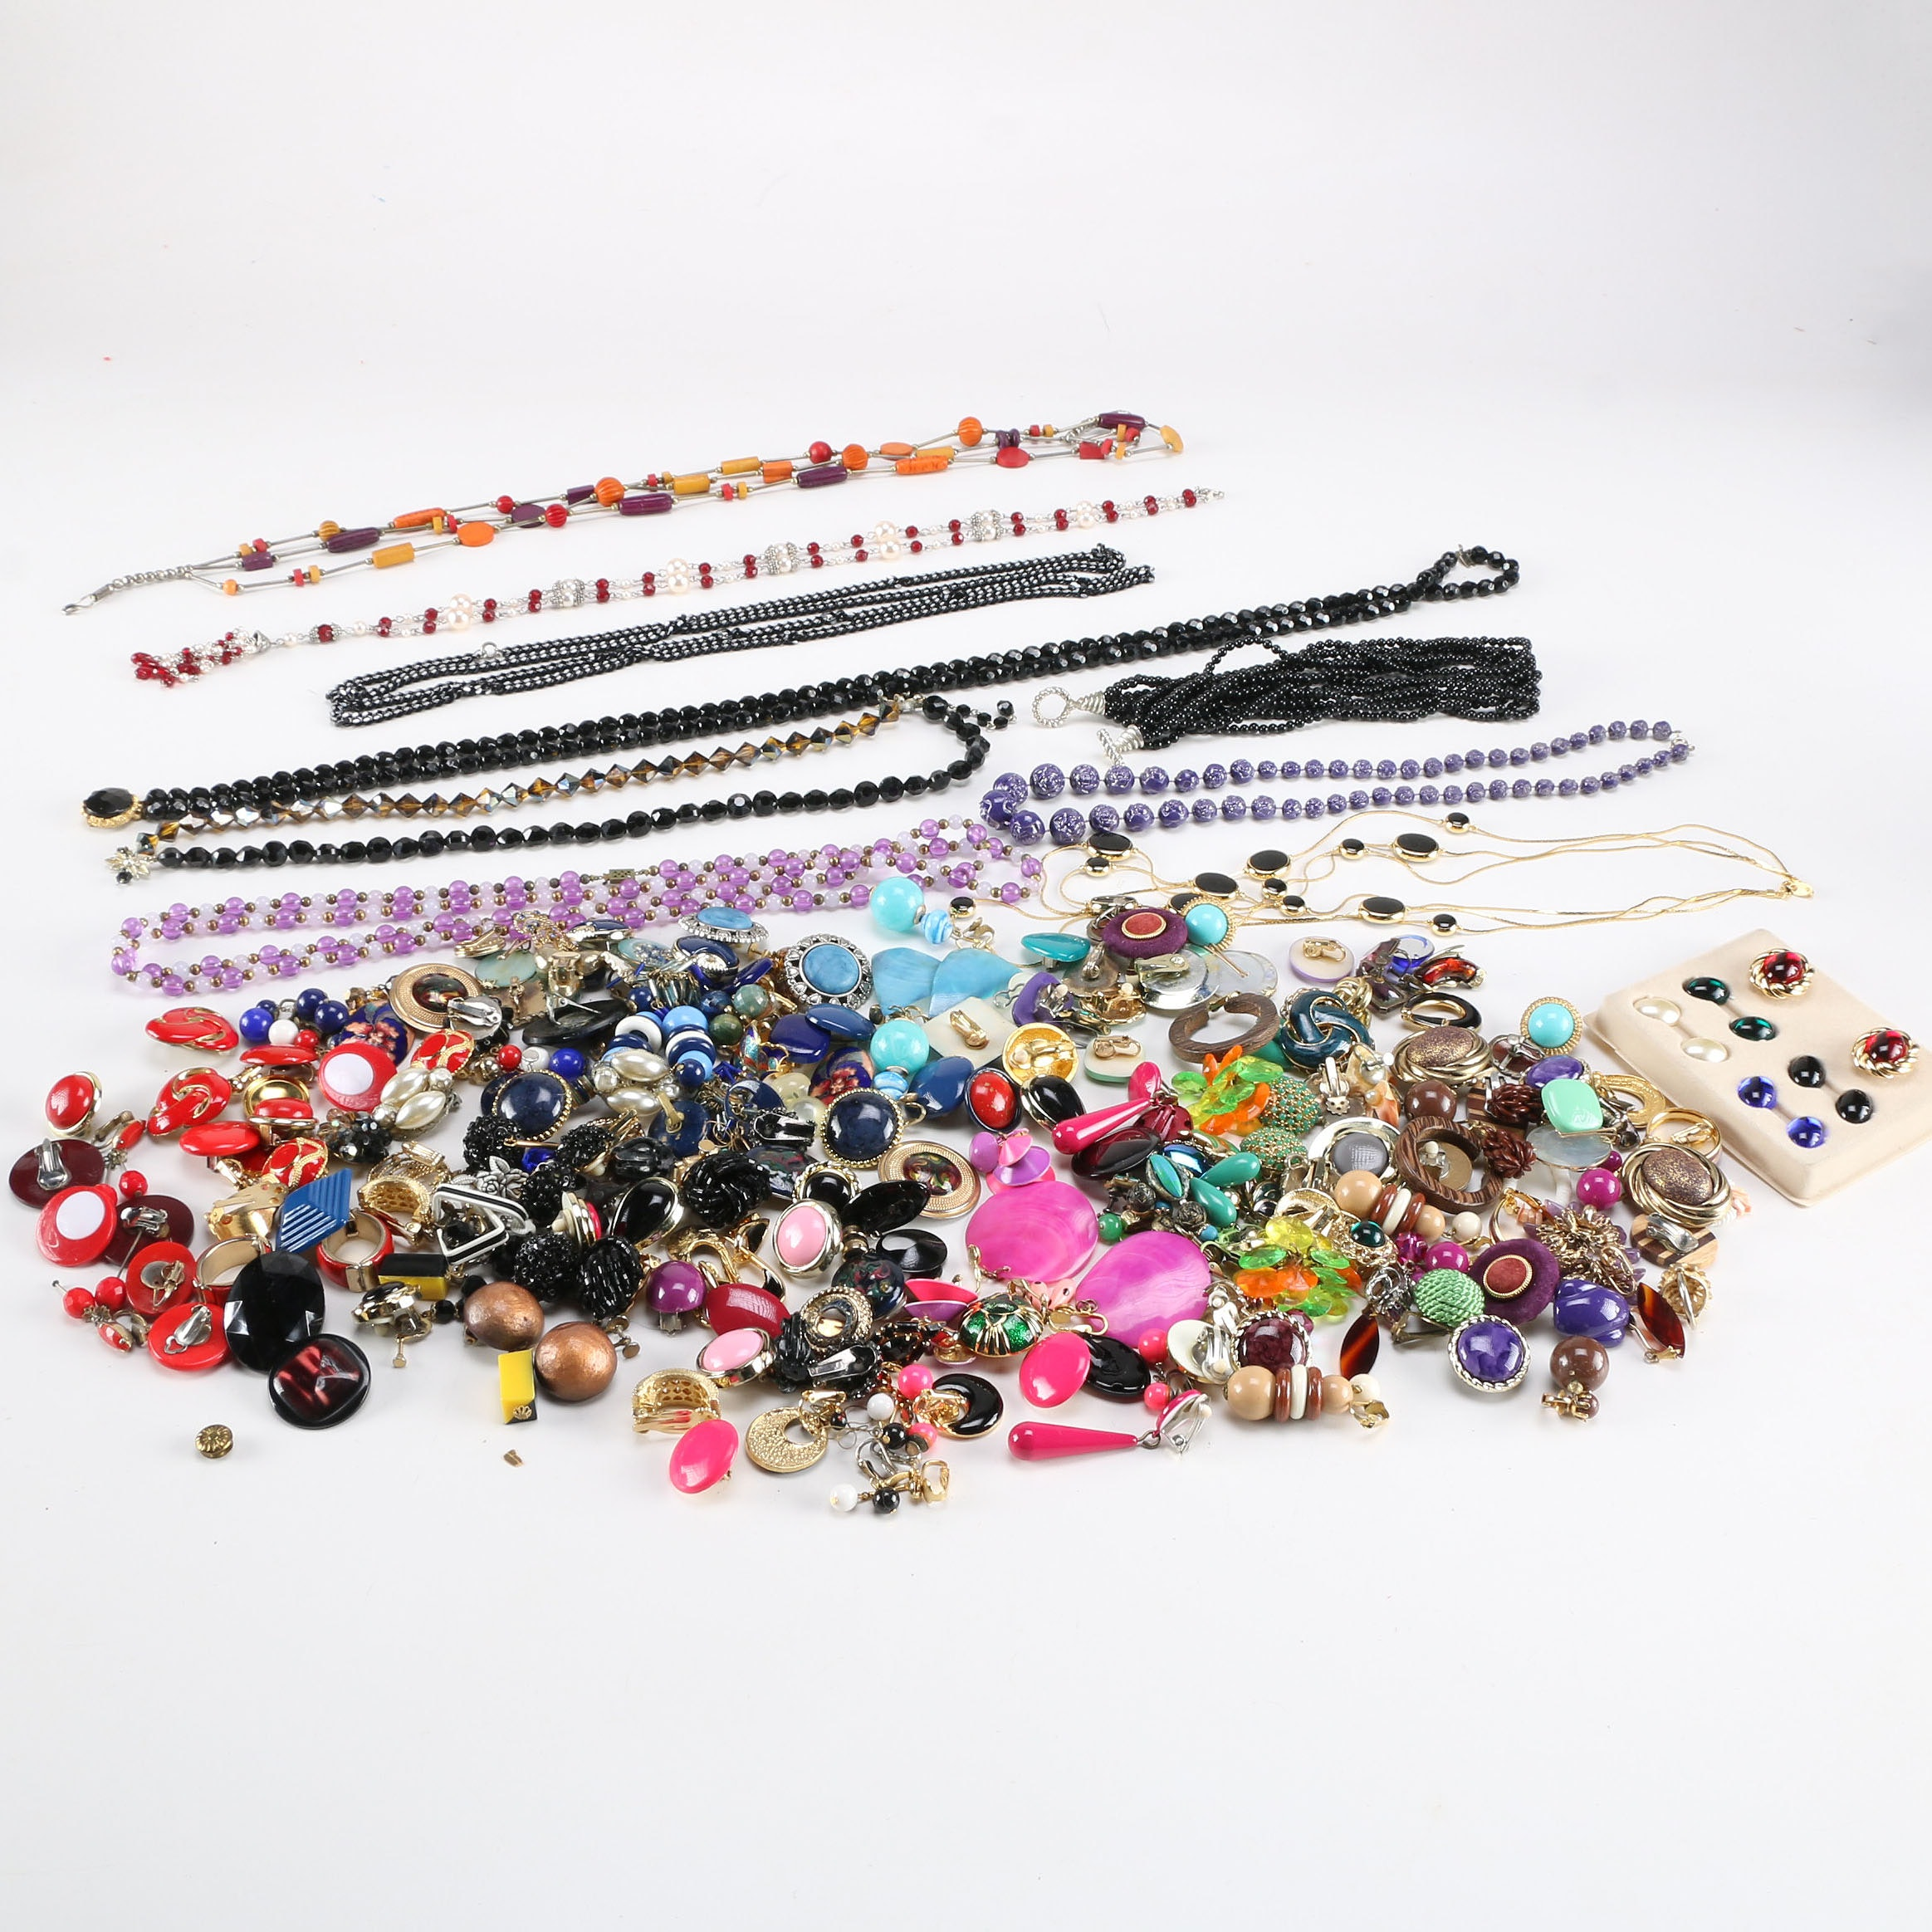 Assortment of Colorful Vintage Costume Jewelry